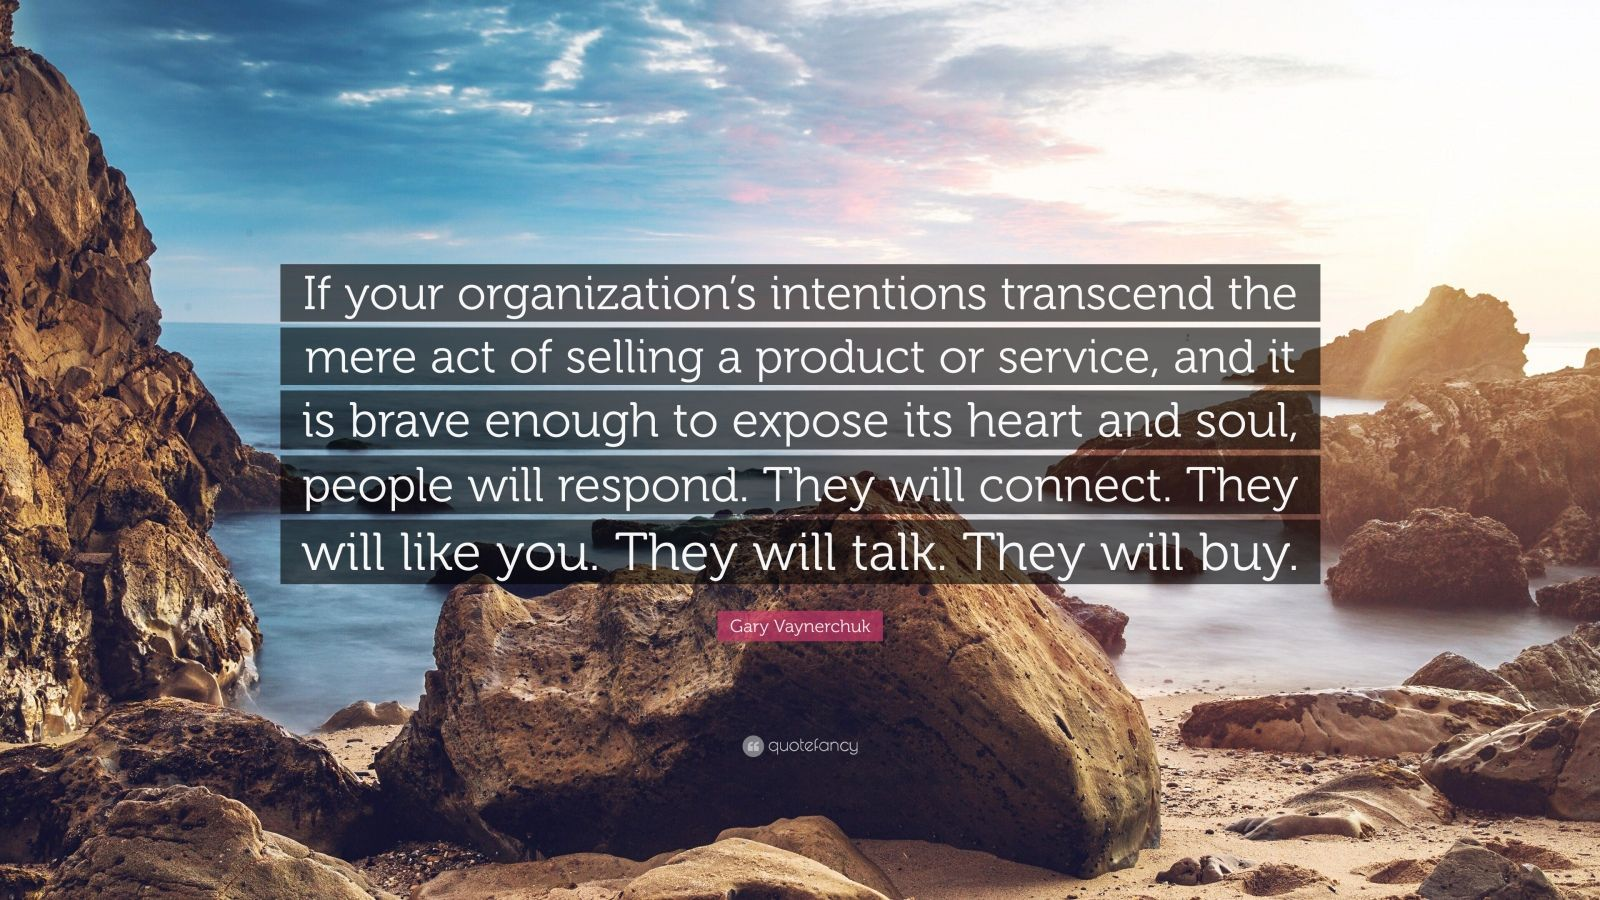 "Gary Vaynerchuk Quote: ""If your organization's intentions transcend the mere act of selling a product or service, and it is brave enough to expose its heart and soul, people will respond. They will connect. They will like you. They will talk. They will buy."""